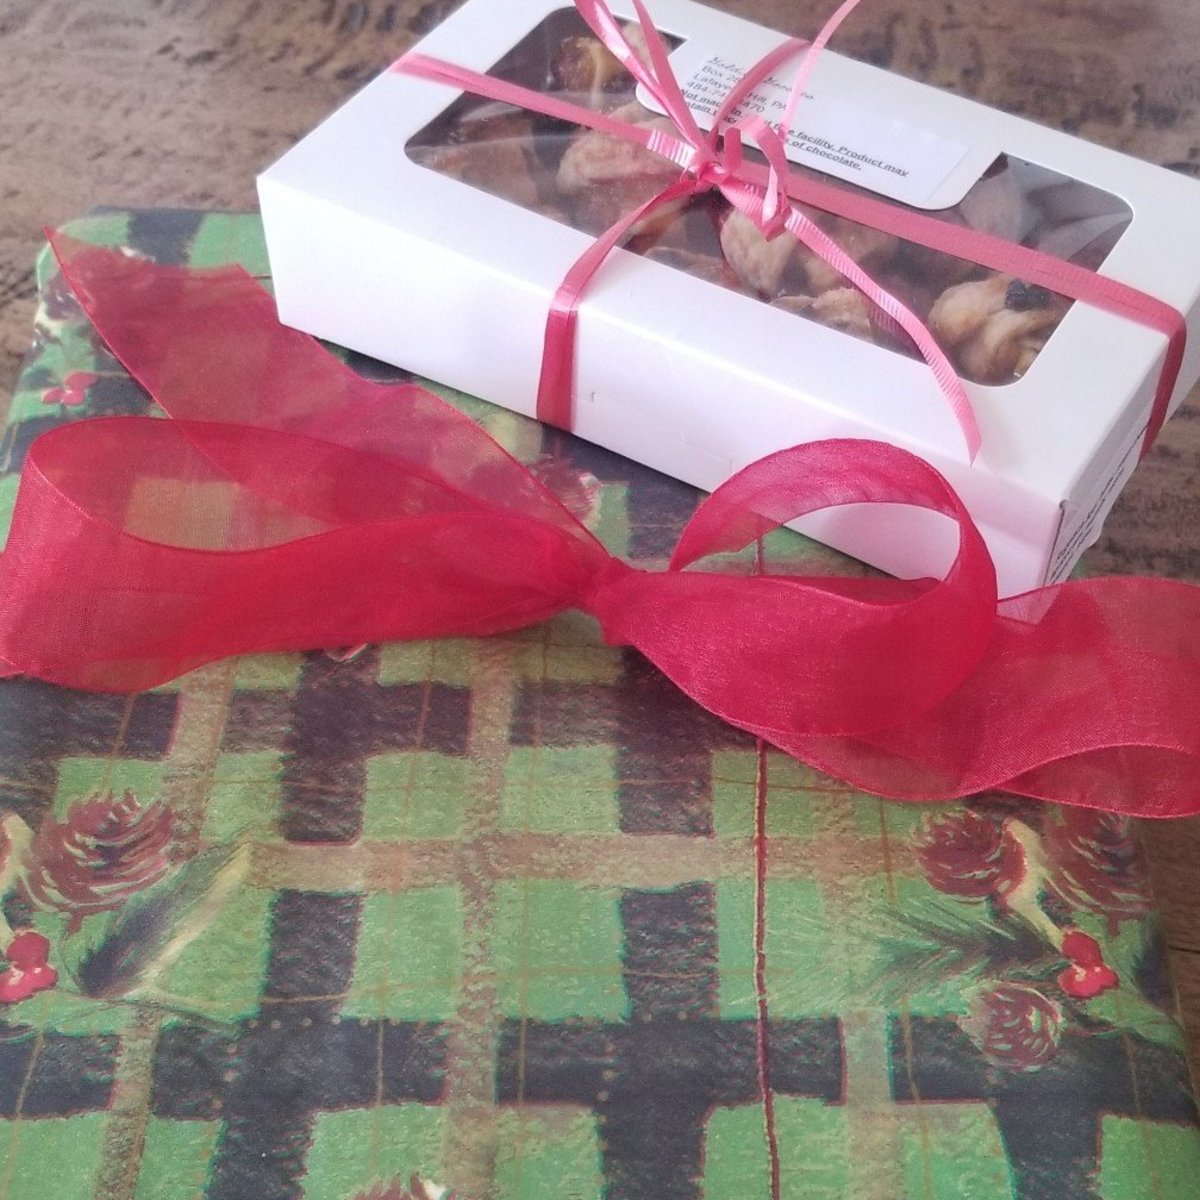 Red ribbon adds vibrant color and interest to gifts.